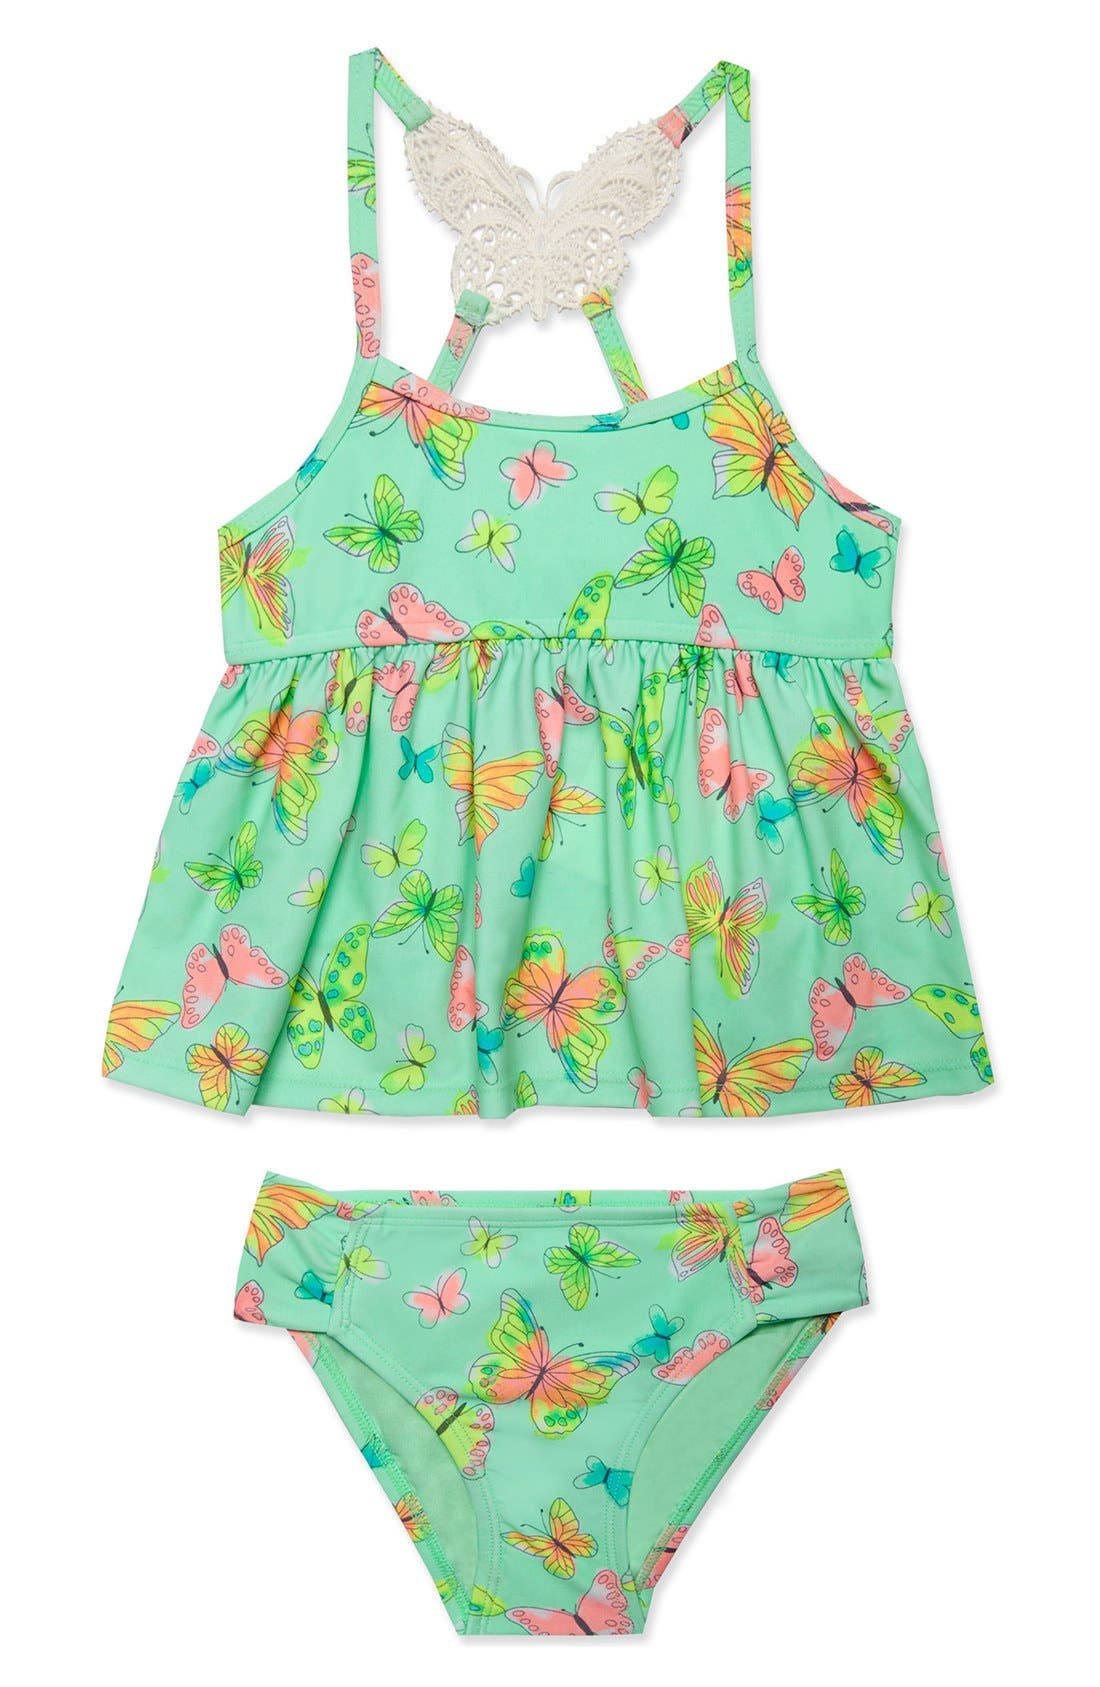 Alternate Image 1 Selected - Hula Star 'Butterfly' Two-Piece Tankini Swimsuit (Toddler Girls & Little Girls)